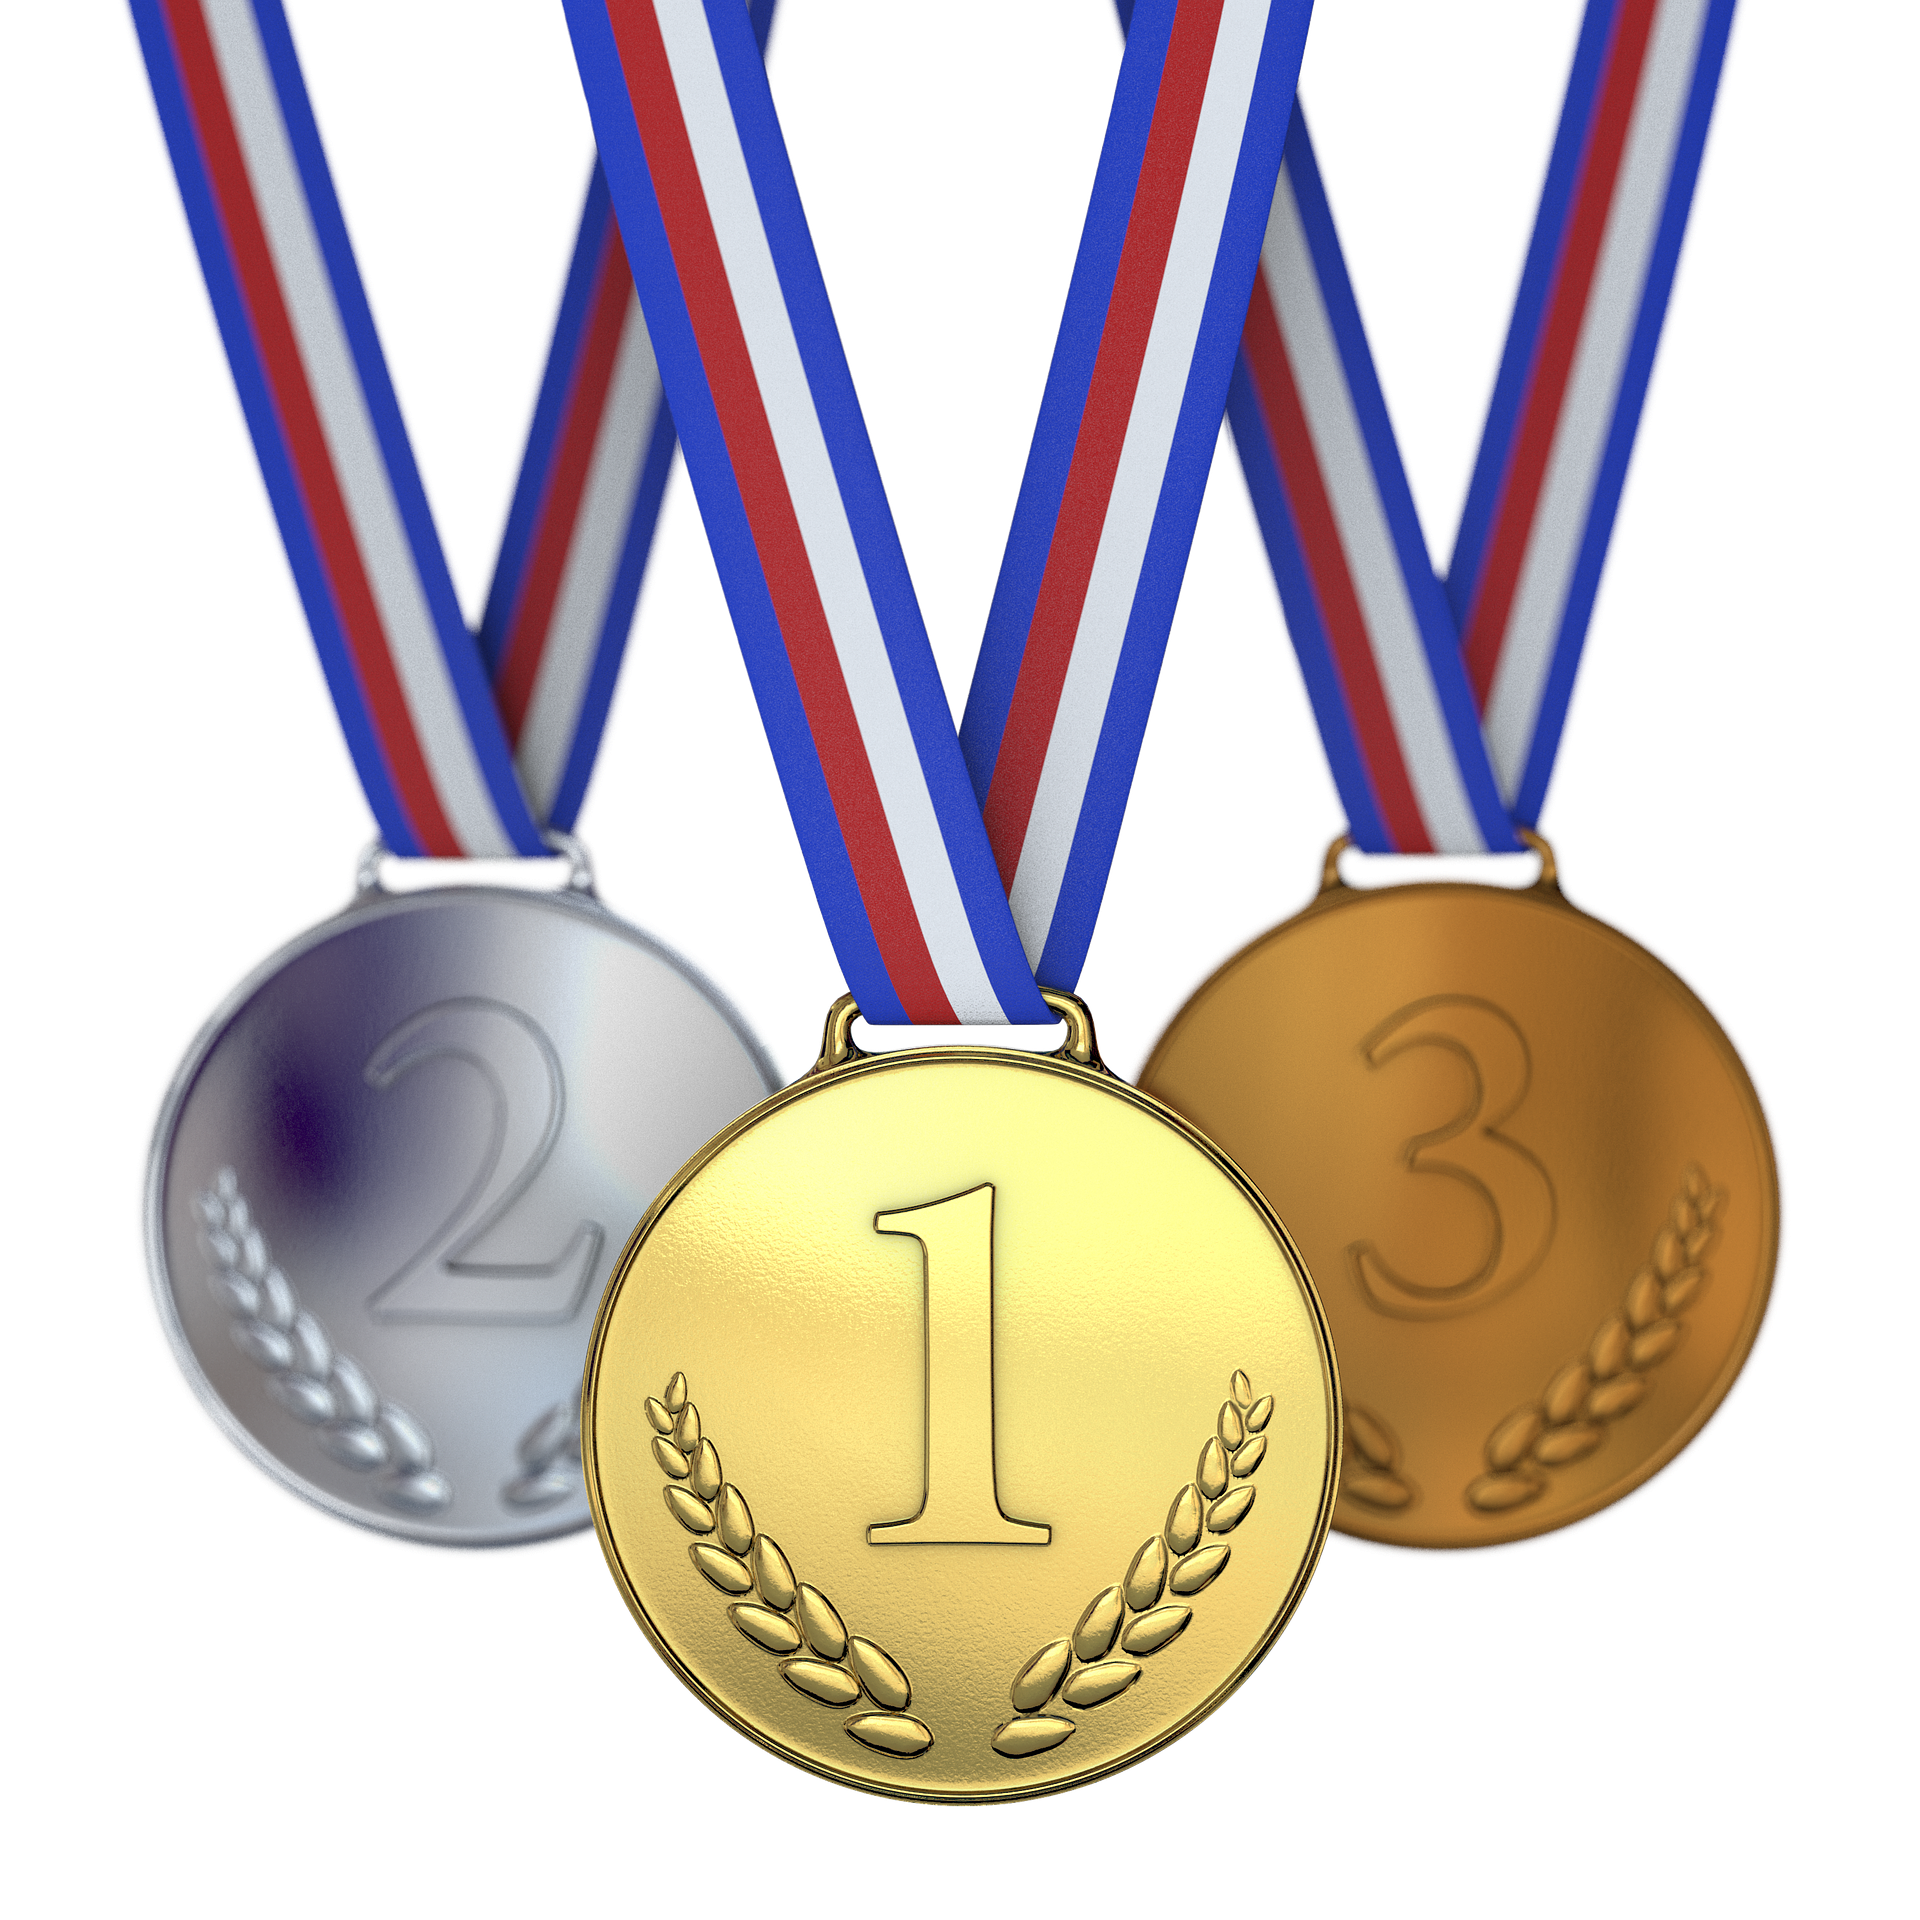 Podium clipart gold medal. Free photo olympic red